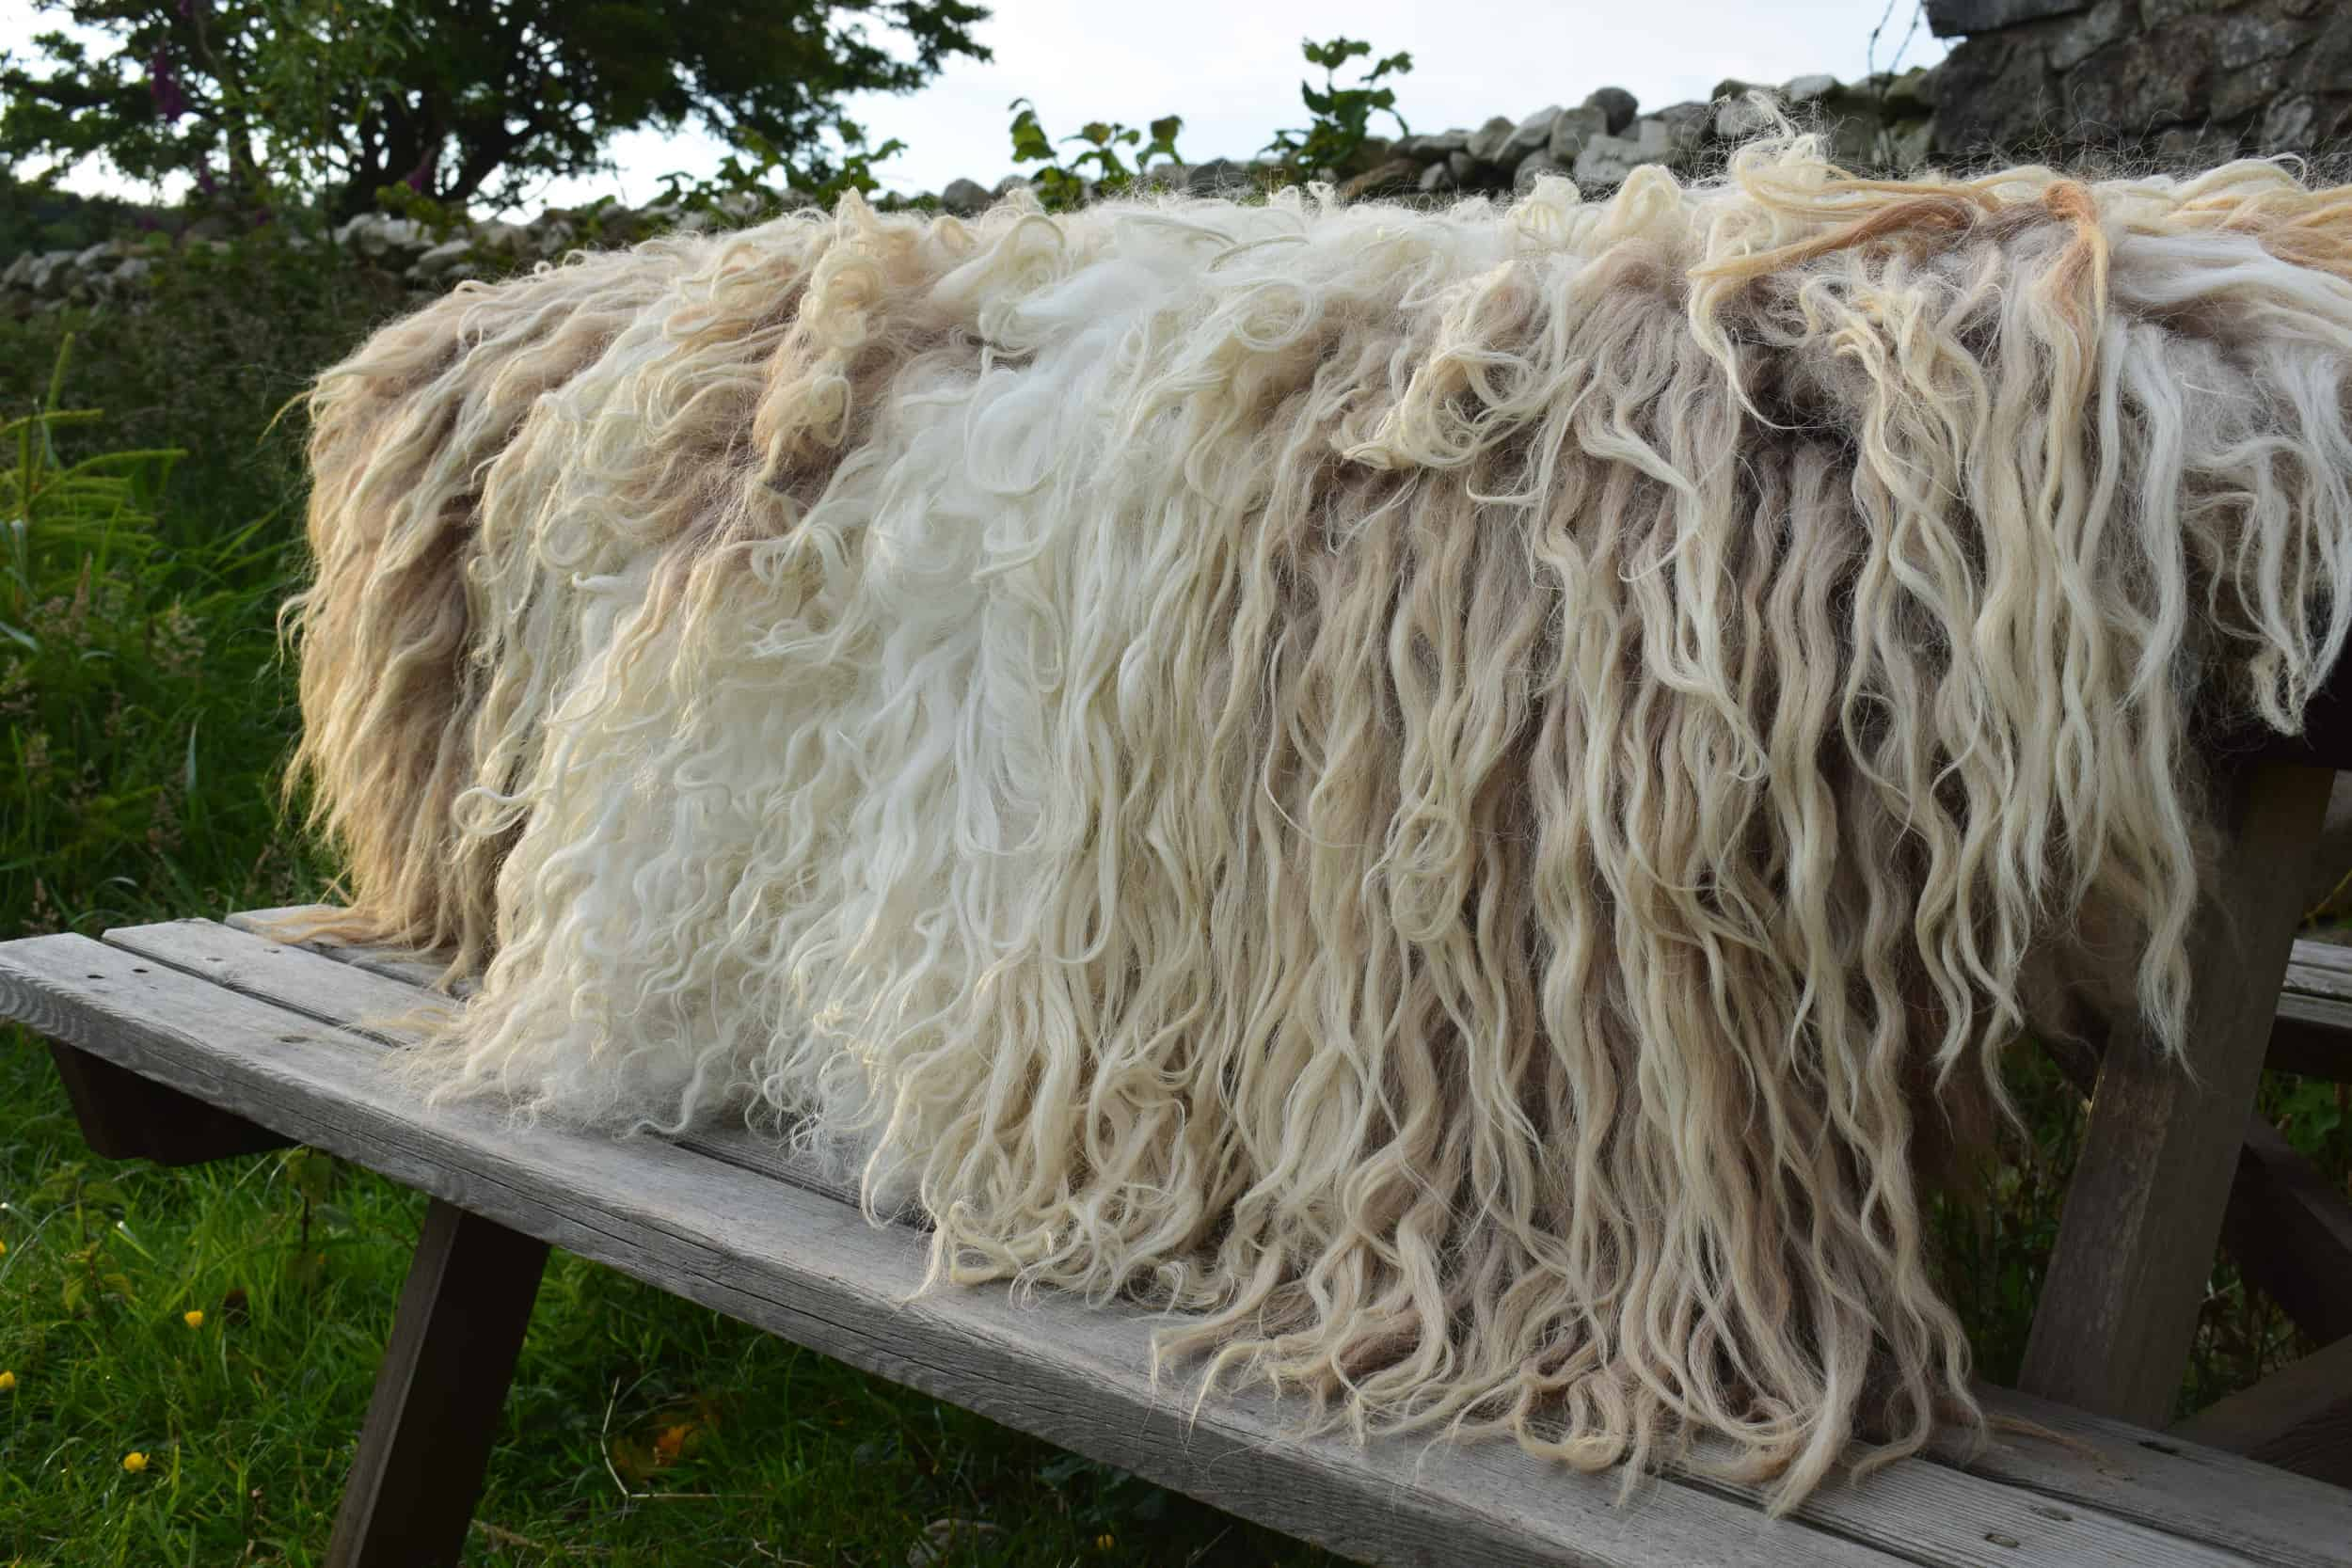 Felted fleece rug vegetarian sheepskin dandelion living rug natural sheep friendly ethical wool sustainable made in wales